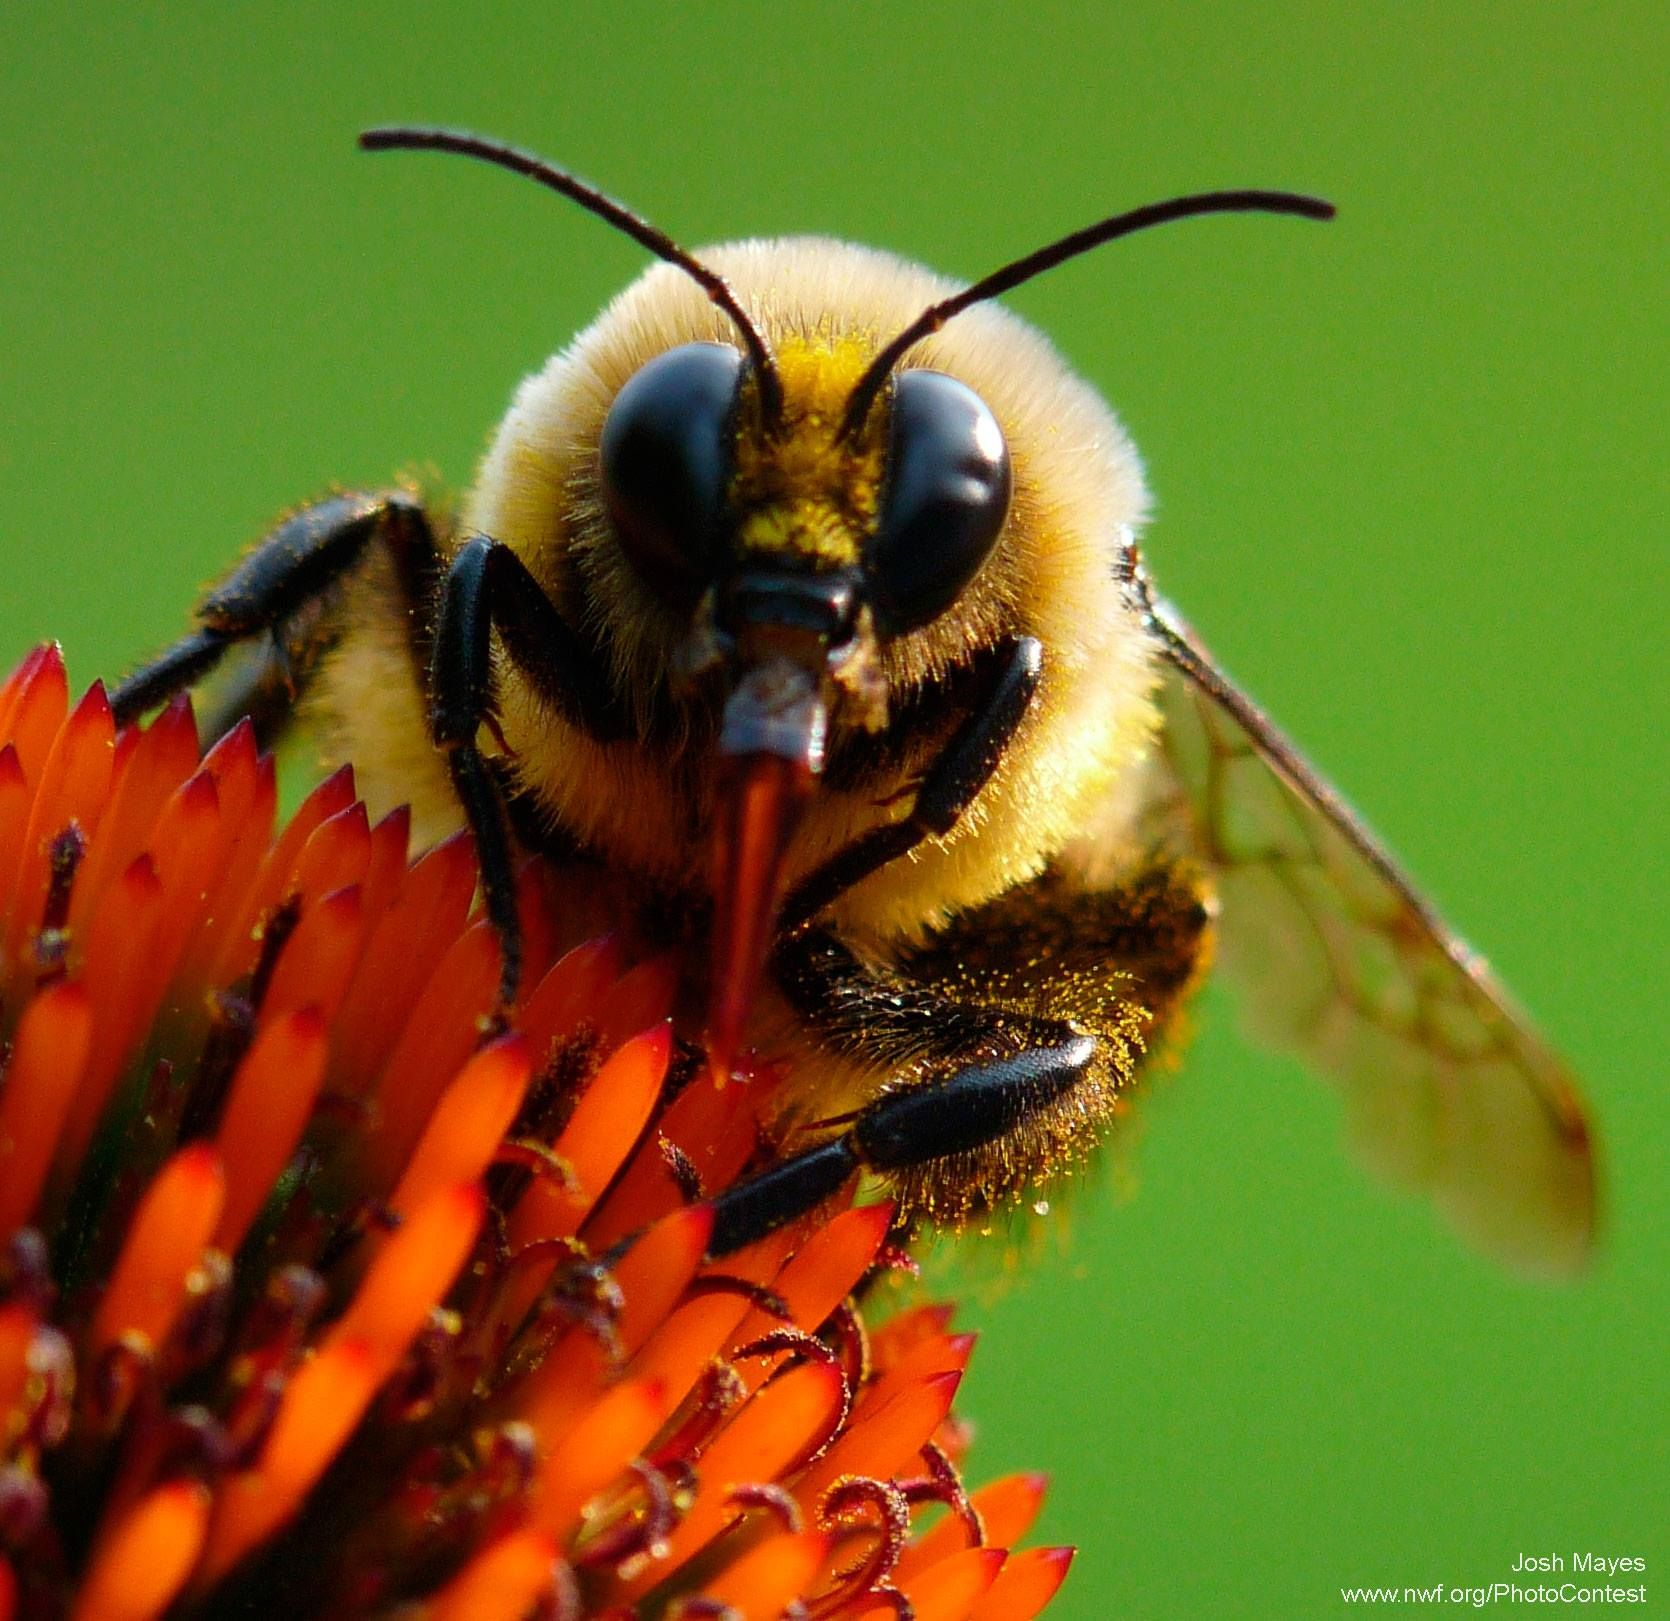 National Movement To Save Pollinators Launched Why You 400 x 300